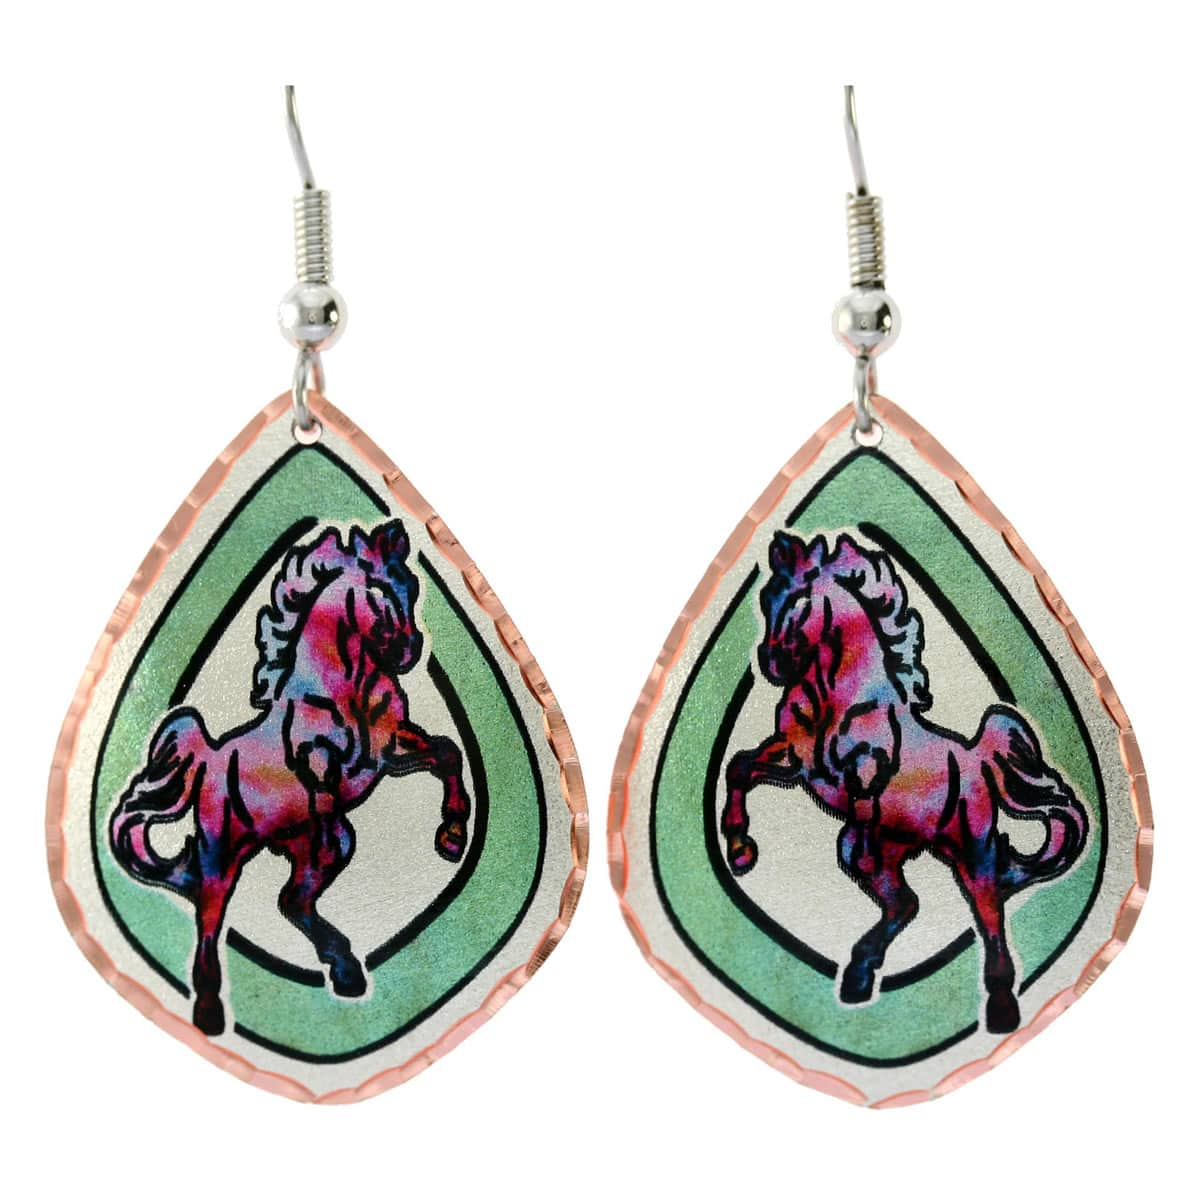 Rearing horse earrings handmade from copper in vibrant colors